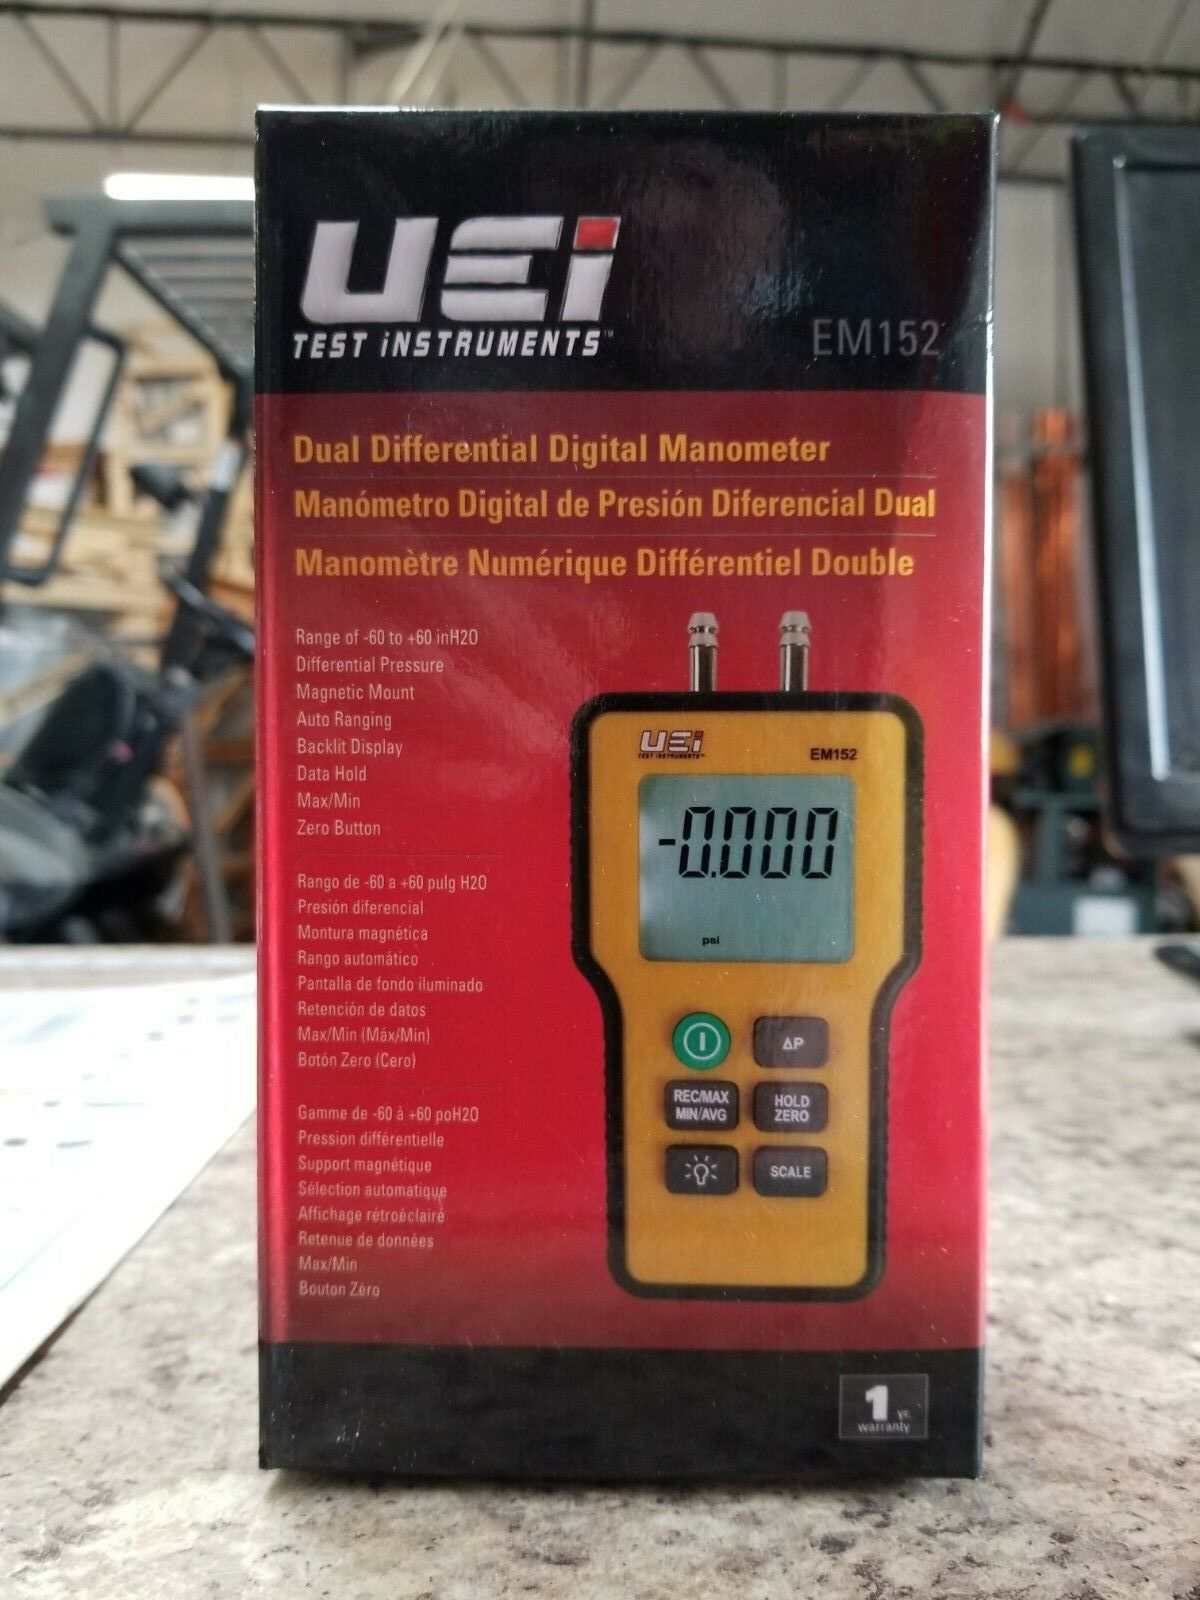 Dual Differential Input Manometer,9V UEI TEST INSTRUMENTS EM152